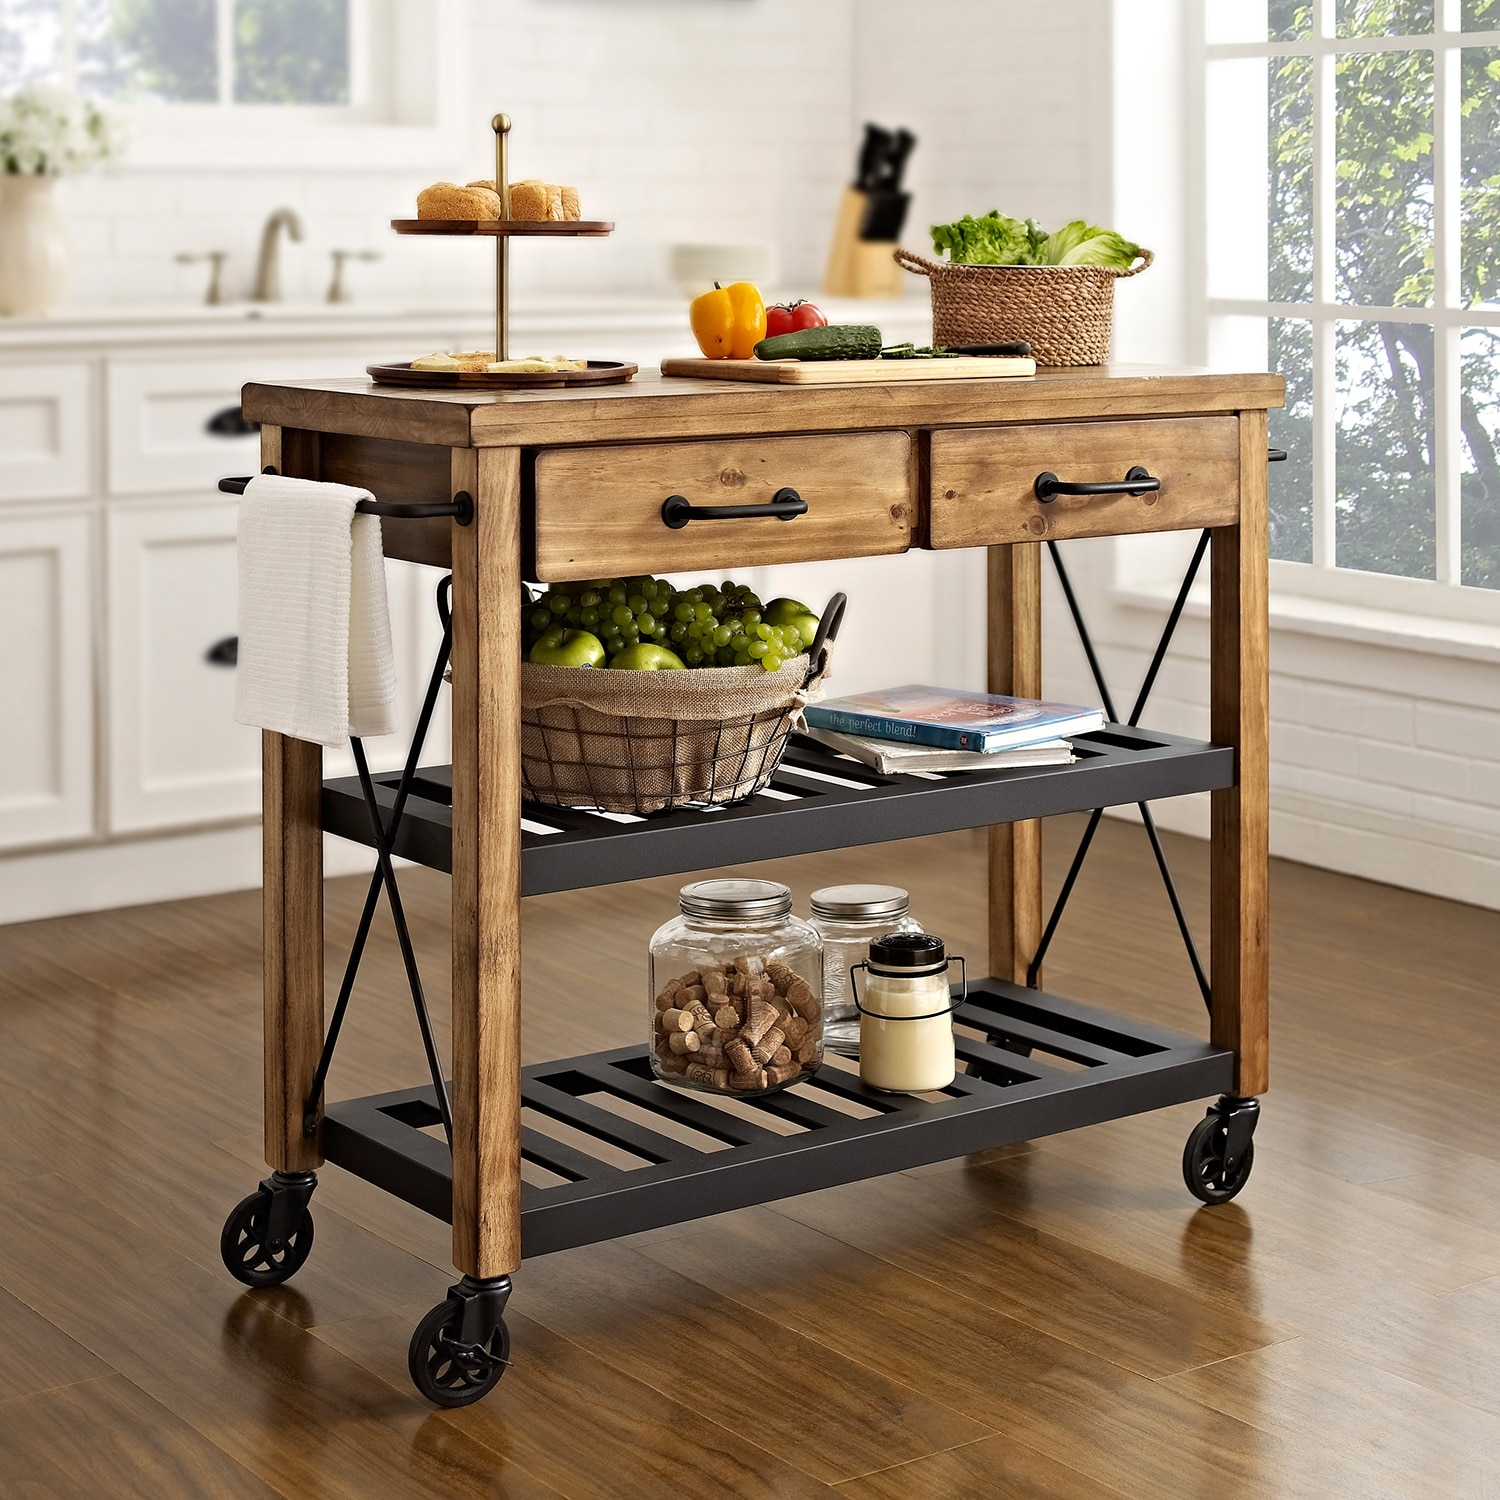 fremont kitchen cart - natural | value city furniture